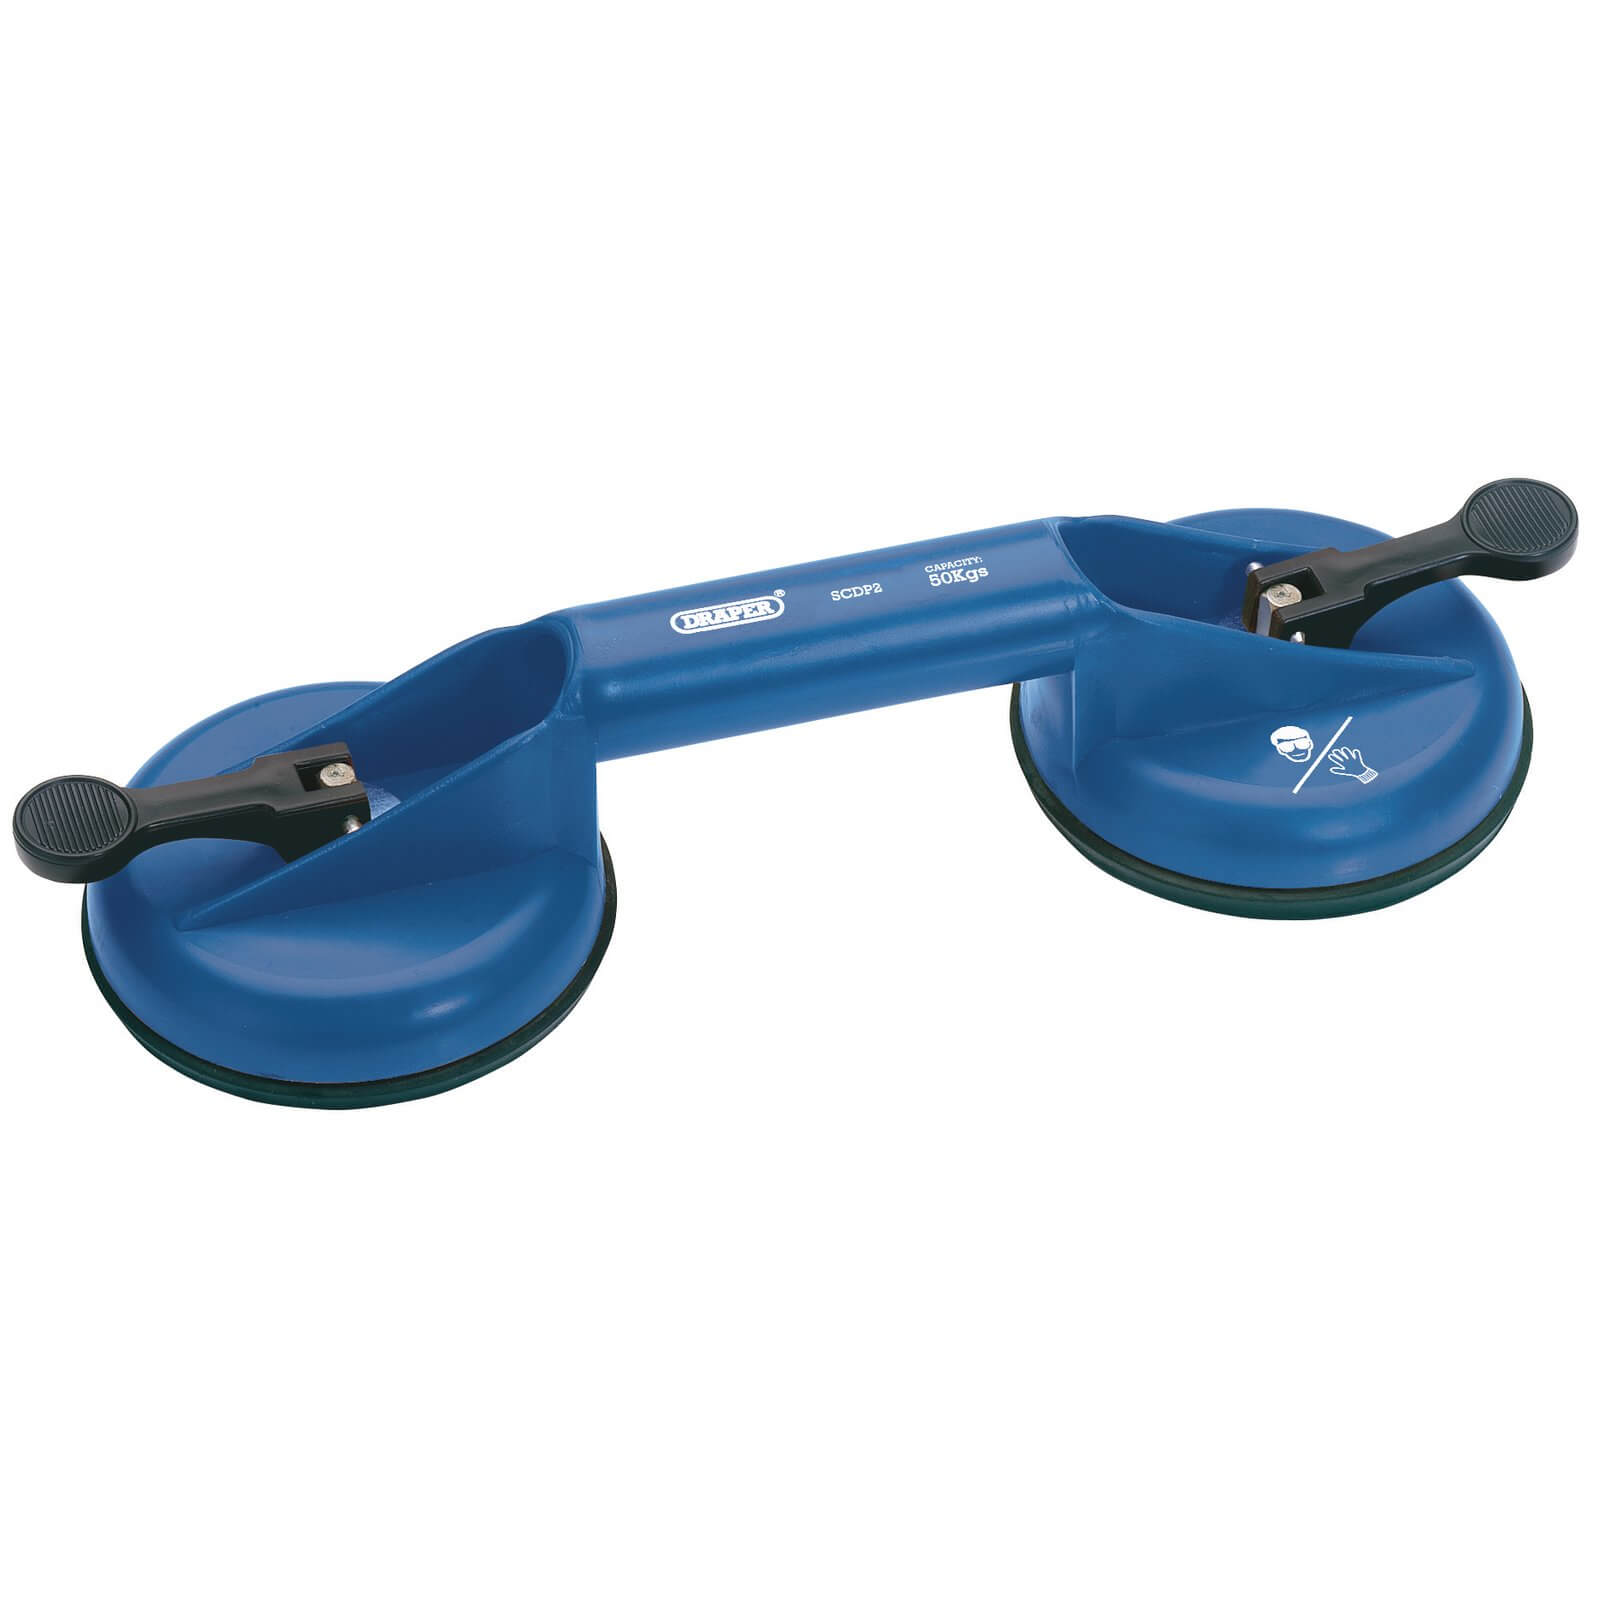 Draper Suction Cup Lifter Double